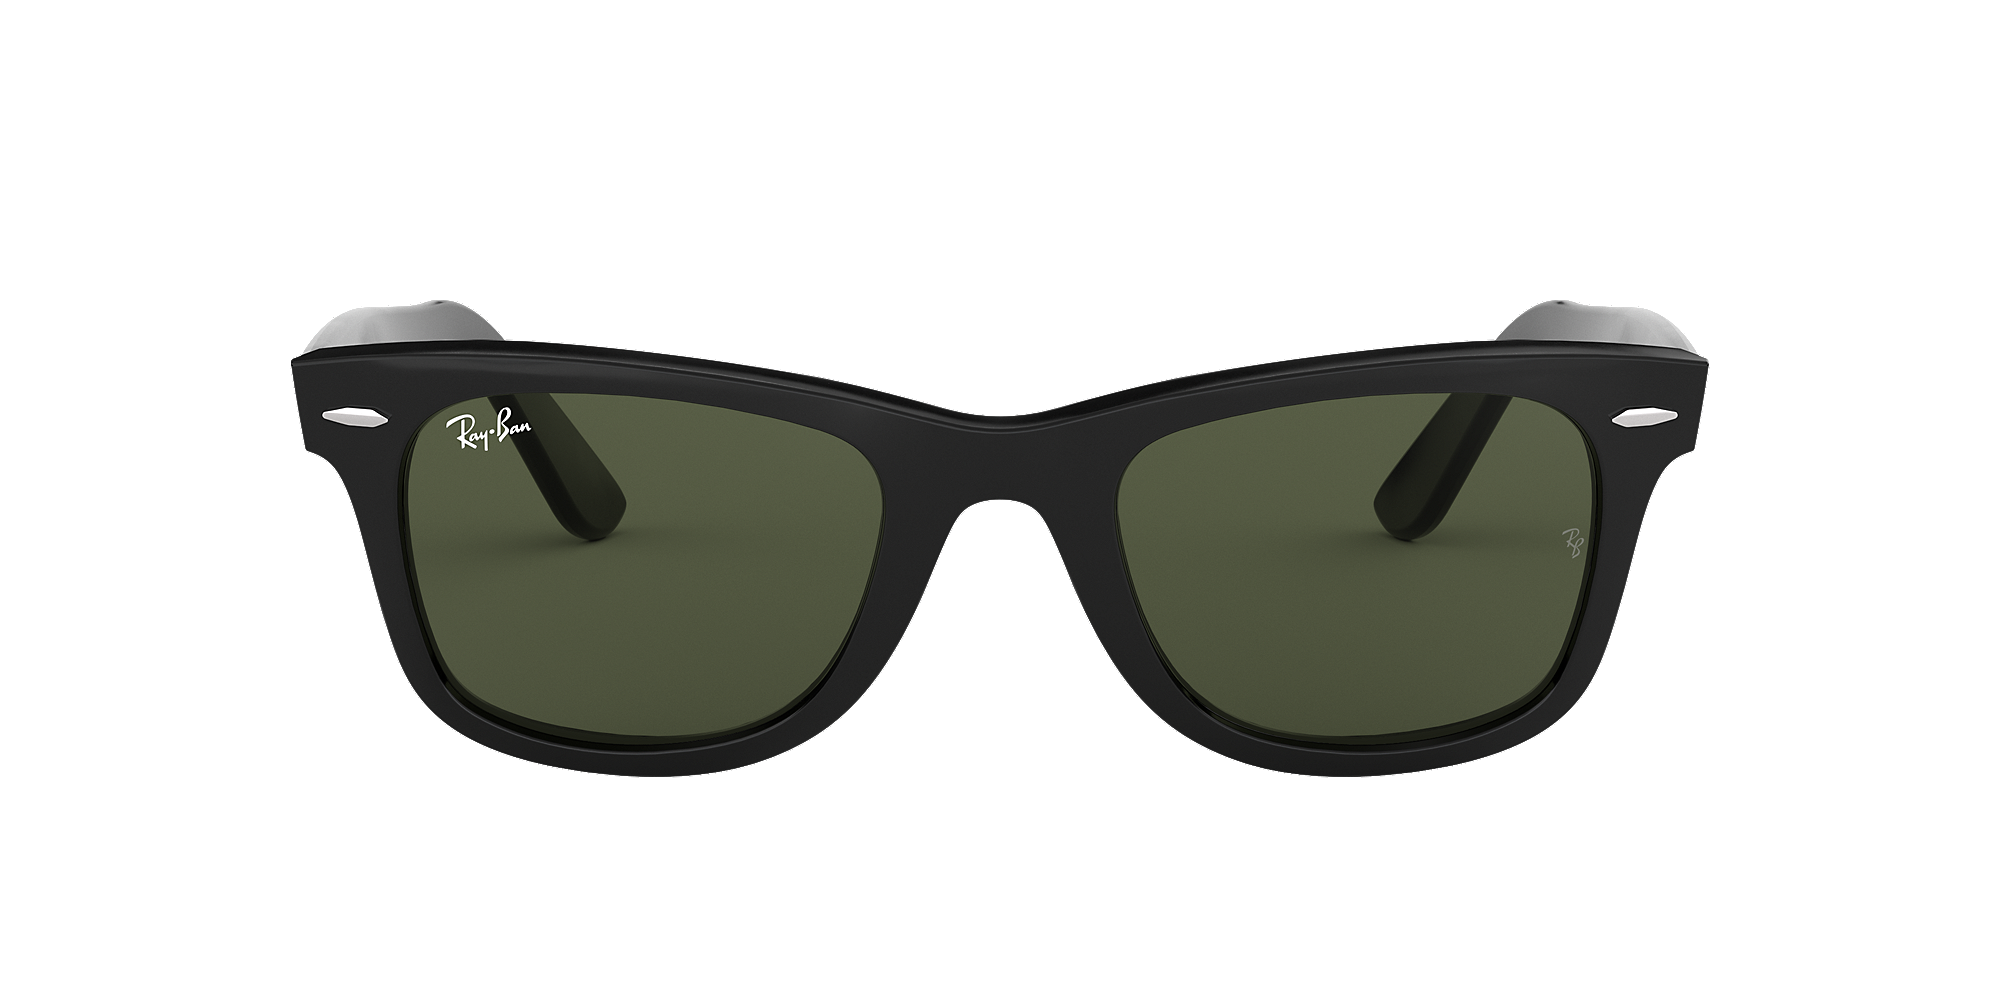 ray ban wayfarer rb2140 vxz7  Sunglasses  Women's Ray-Ban Original Wayfarer Sunglasses in Black